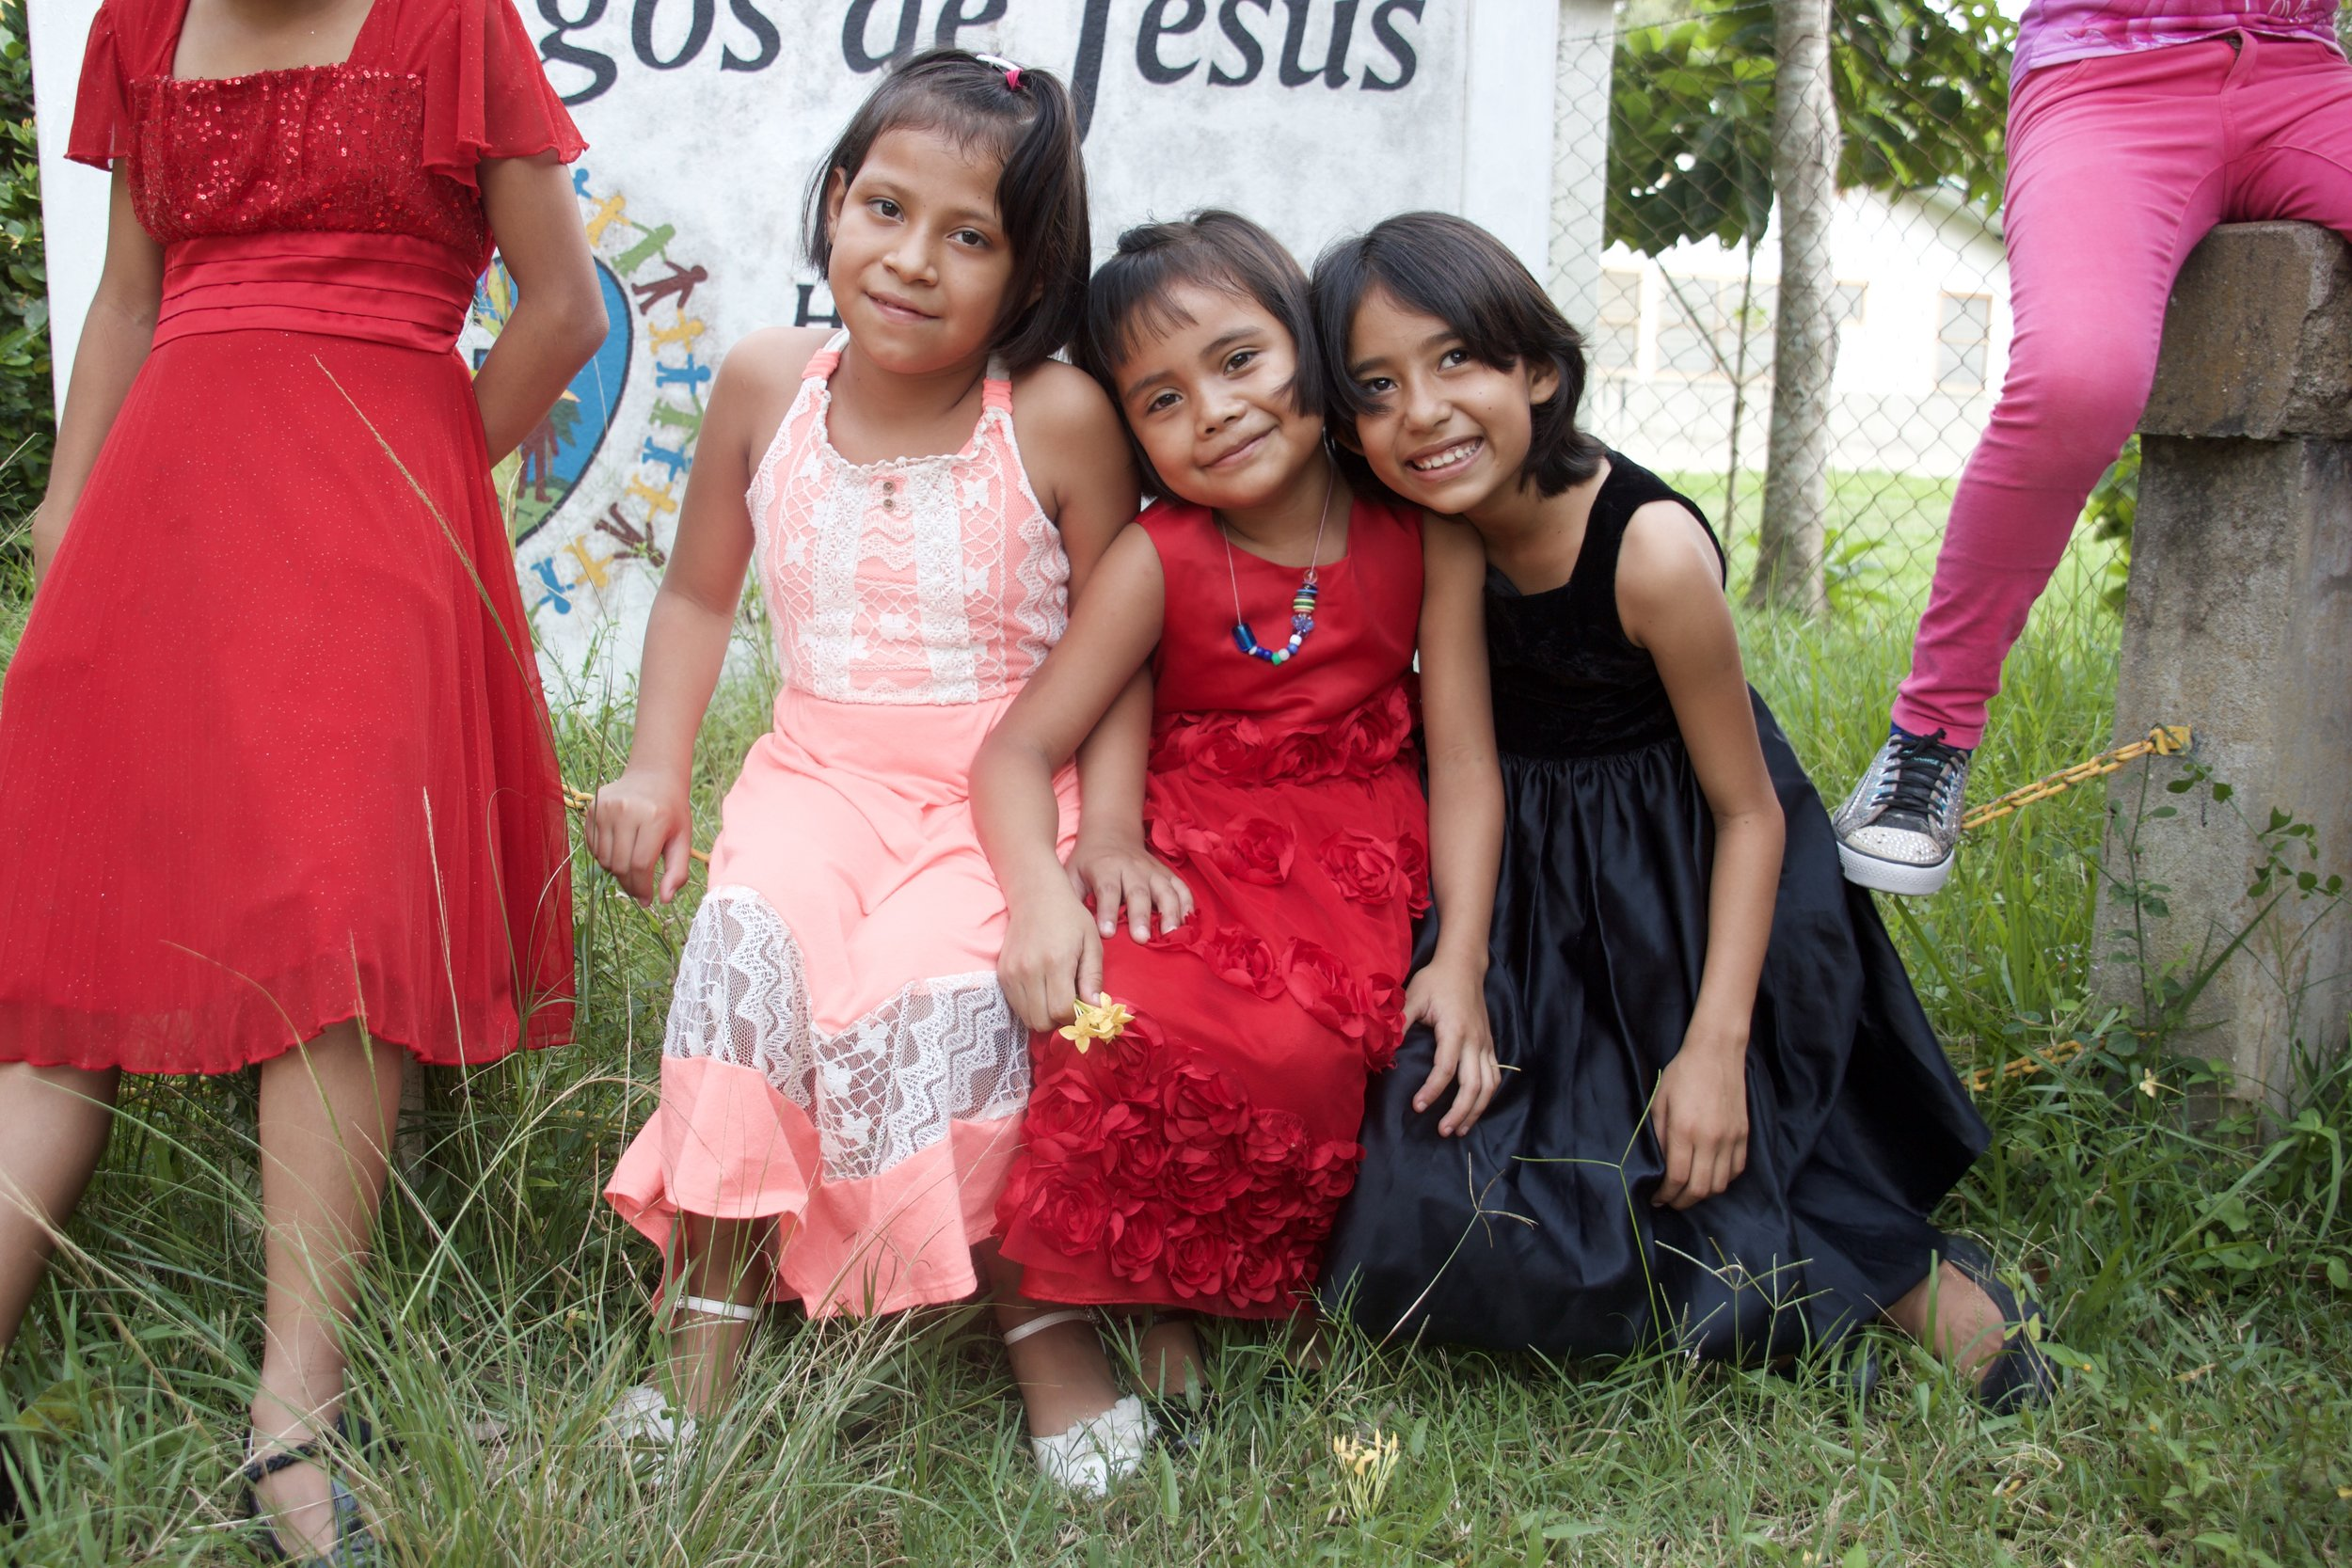 Perla (in the black dress on the right) with two of the other girls in her dorm.